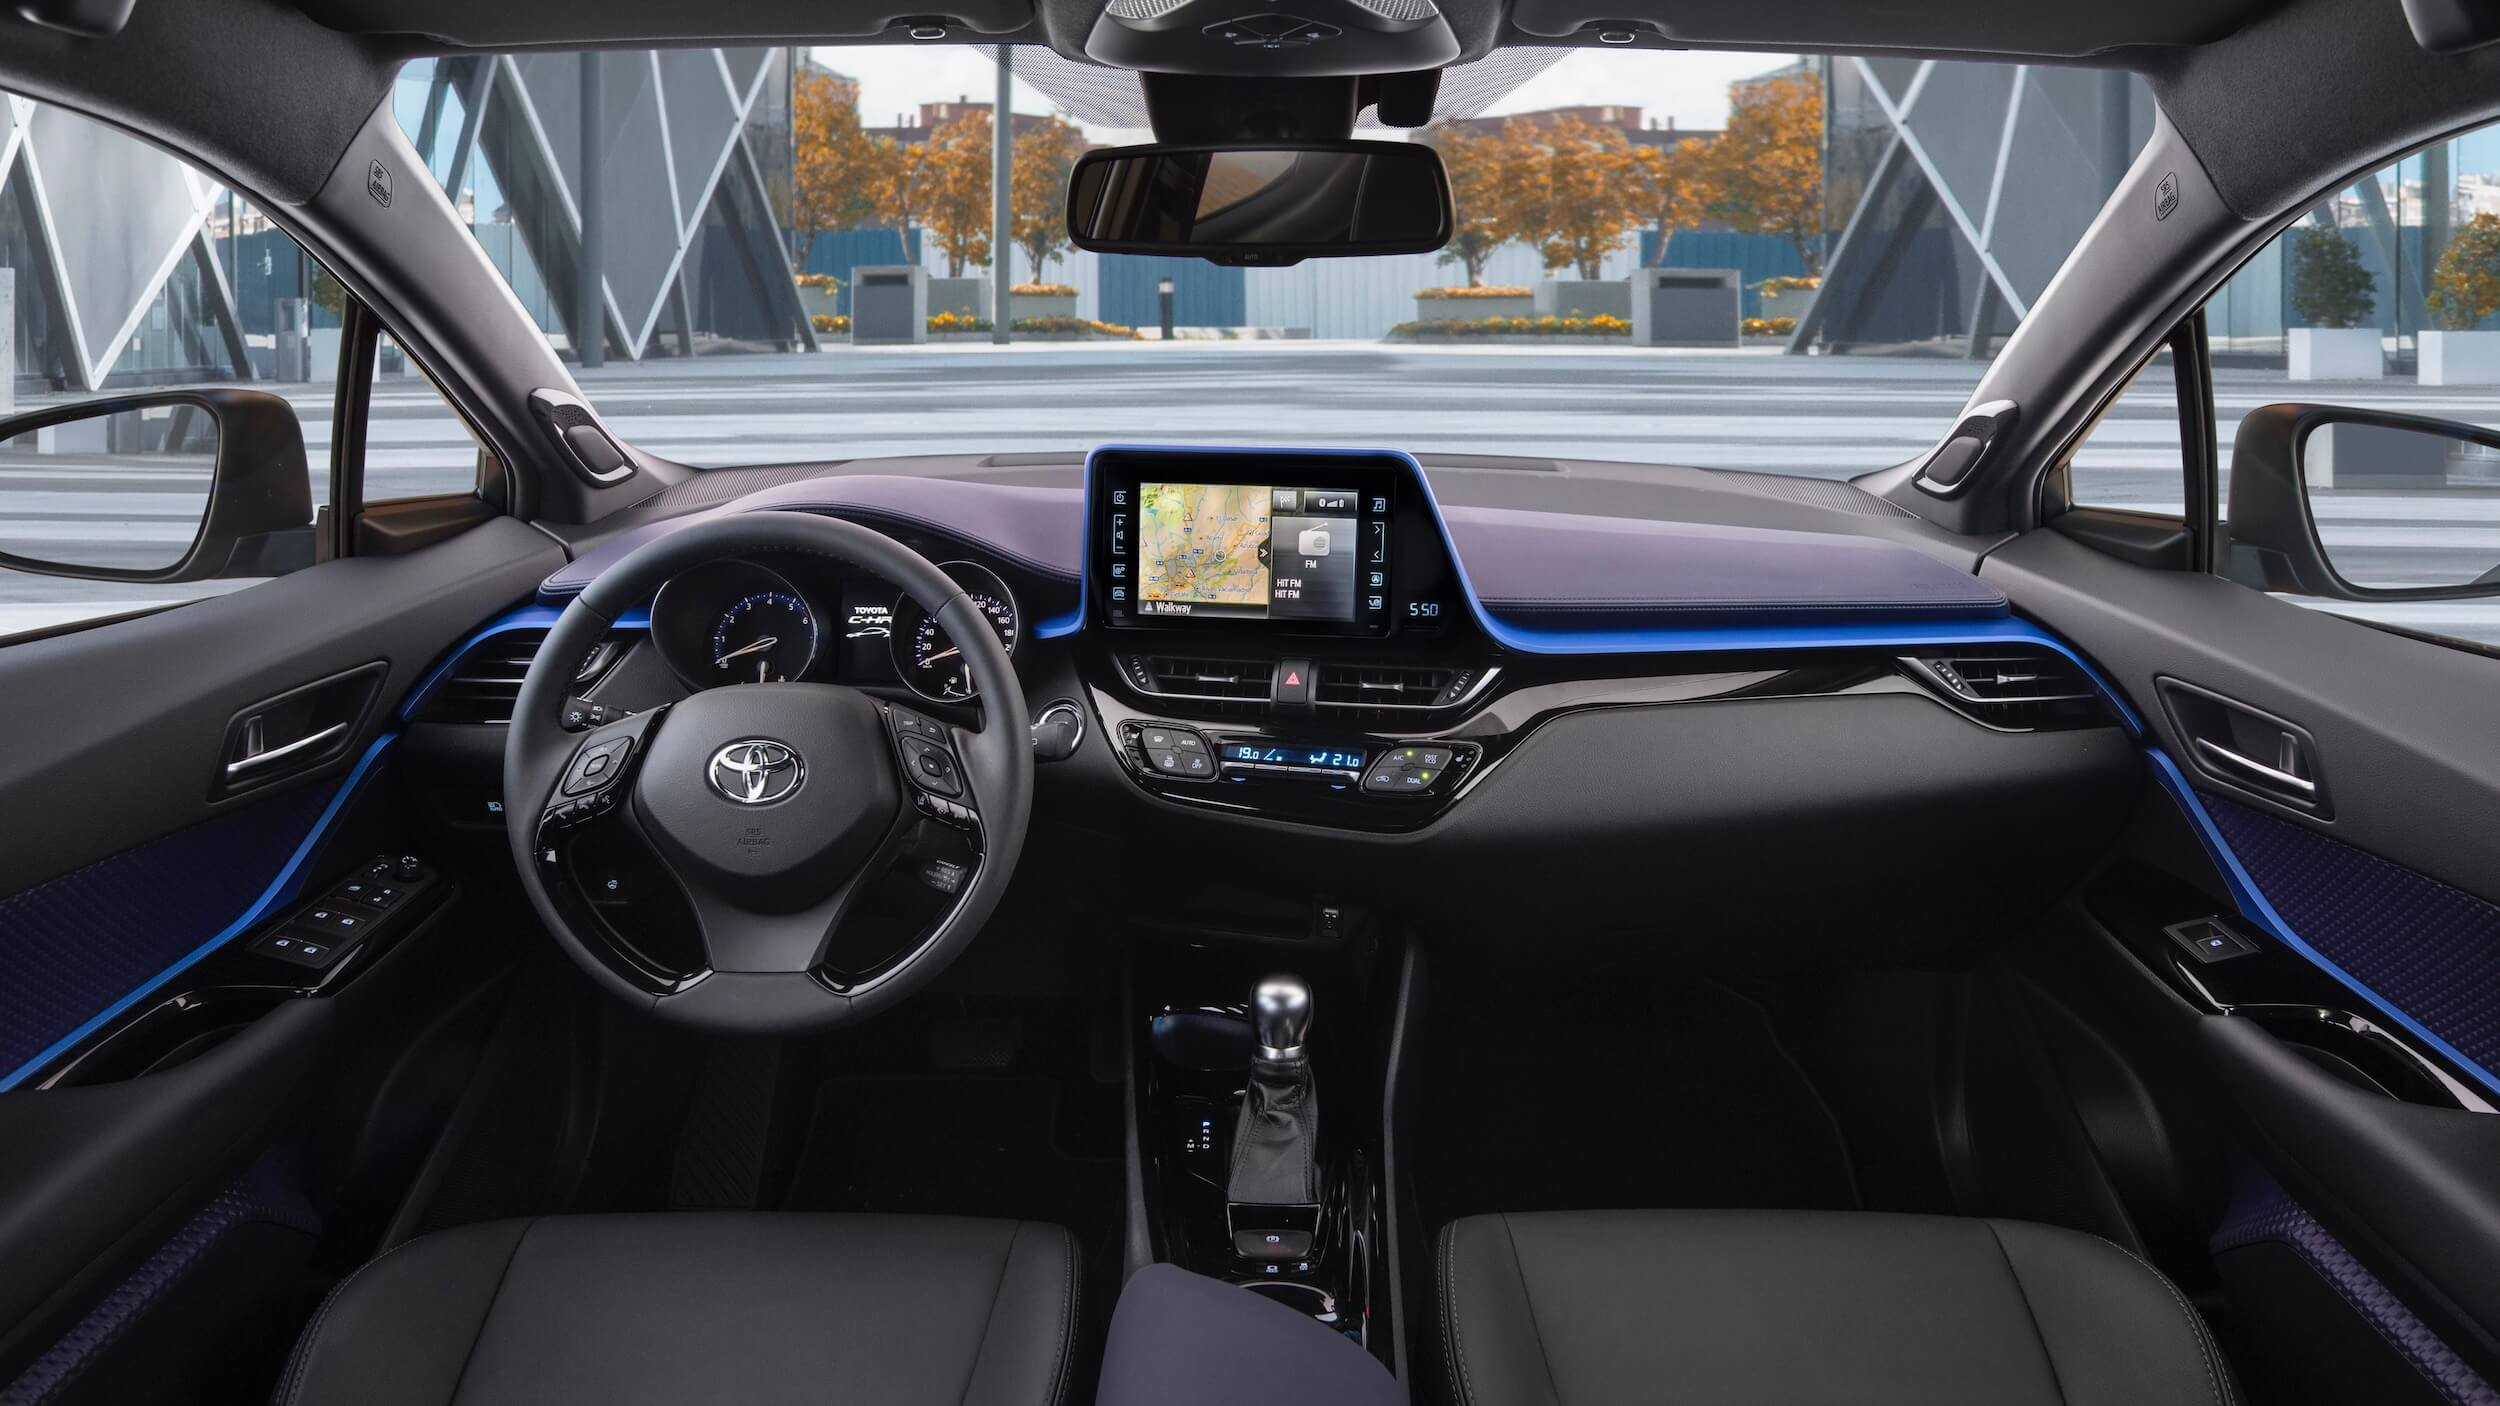 Toyota C-HR interior